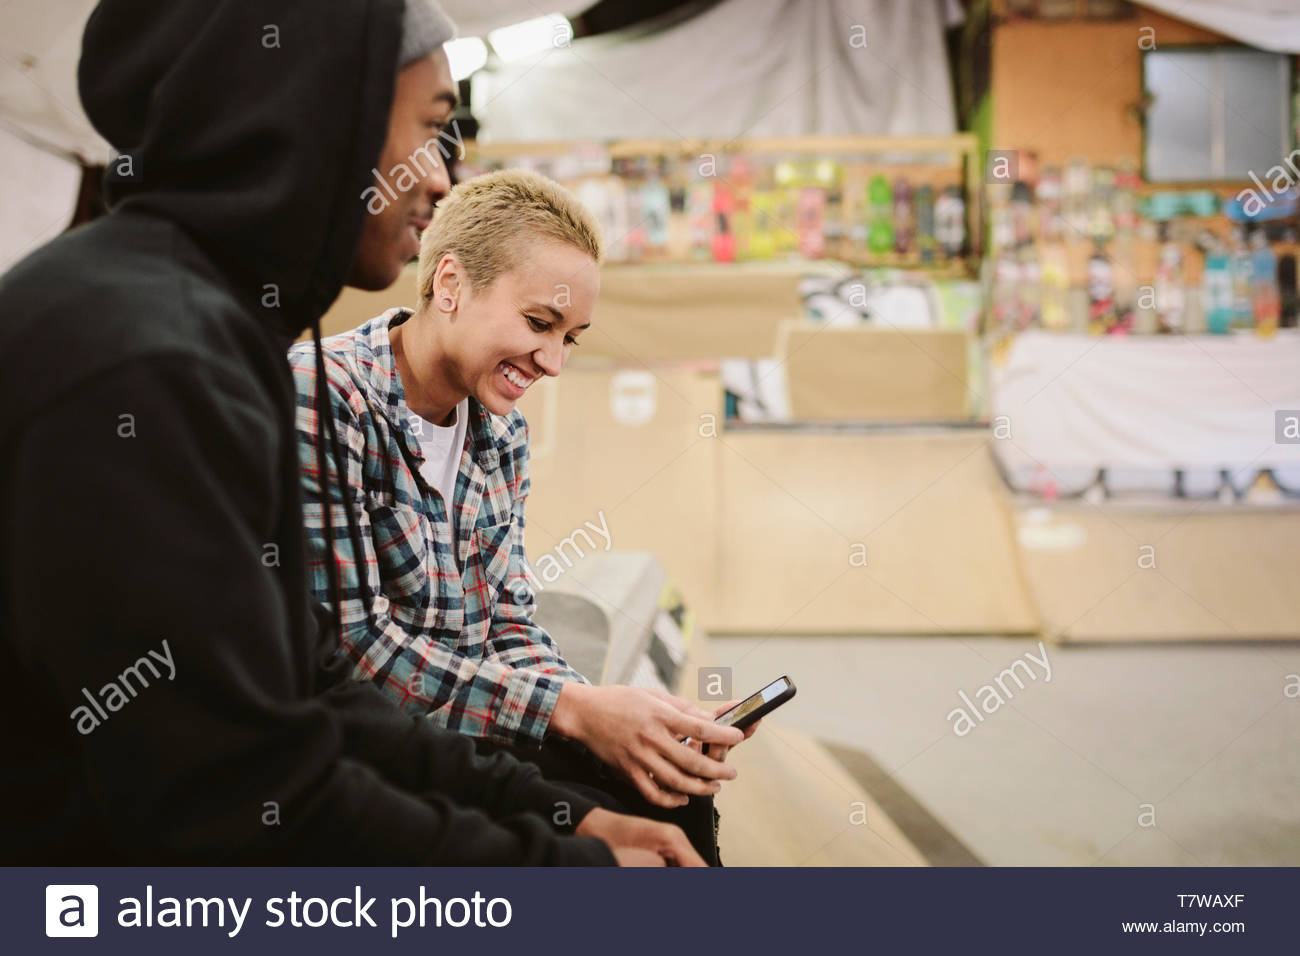 Young adult friends hanging out at indoor skate park Photo Stock